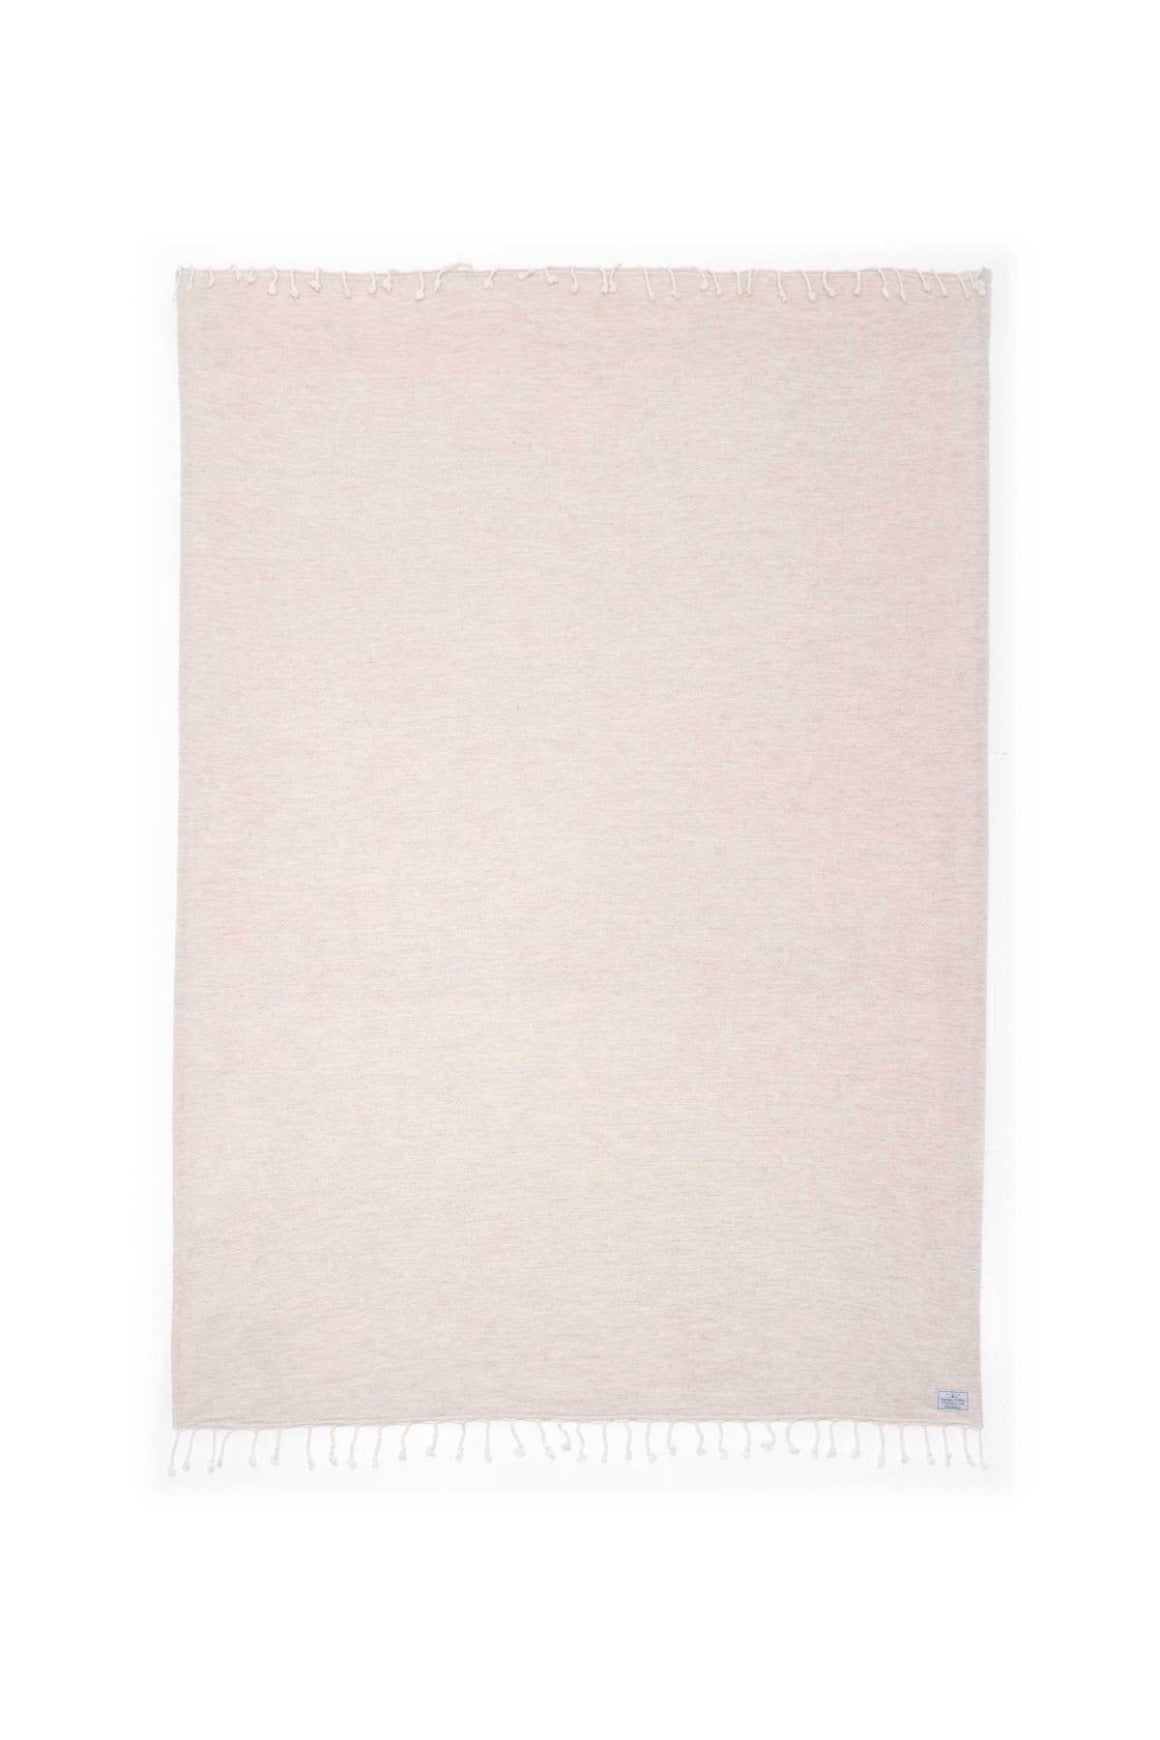 Tofino Towel Co Shoreline Throw Silica